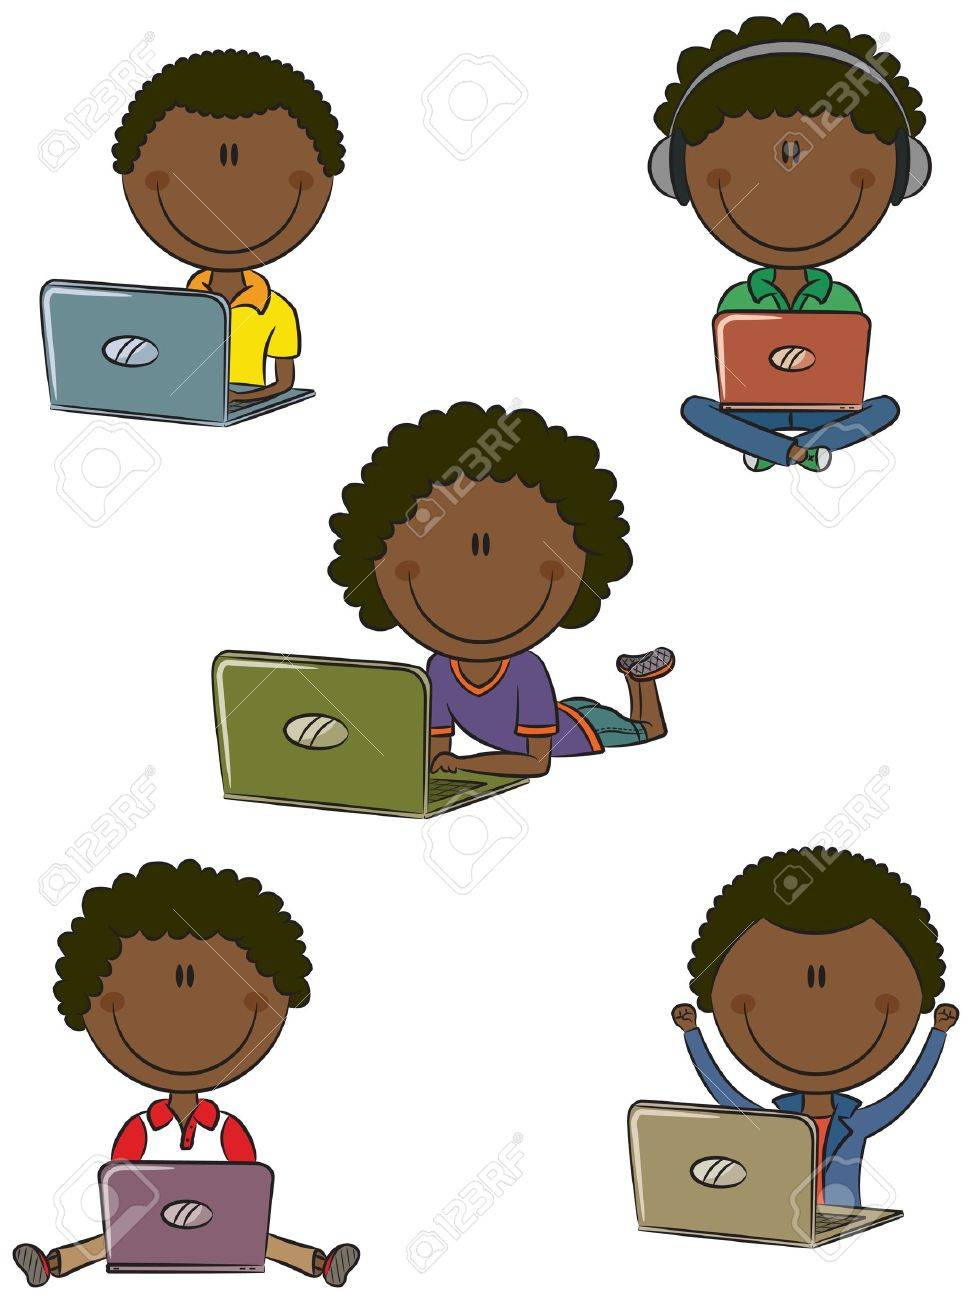 Cute African-American boys with laptops sitting in different poses Stock Vector - 15073466